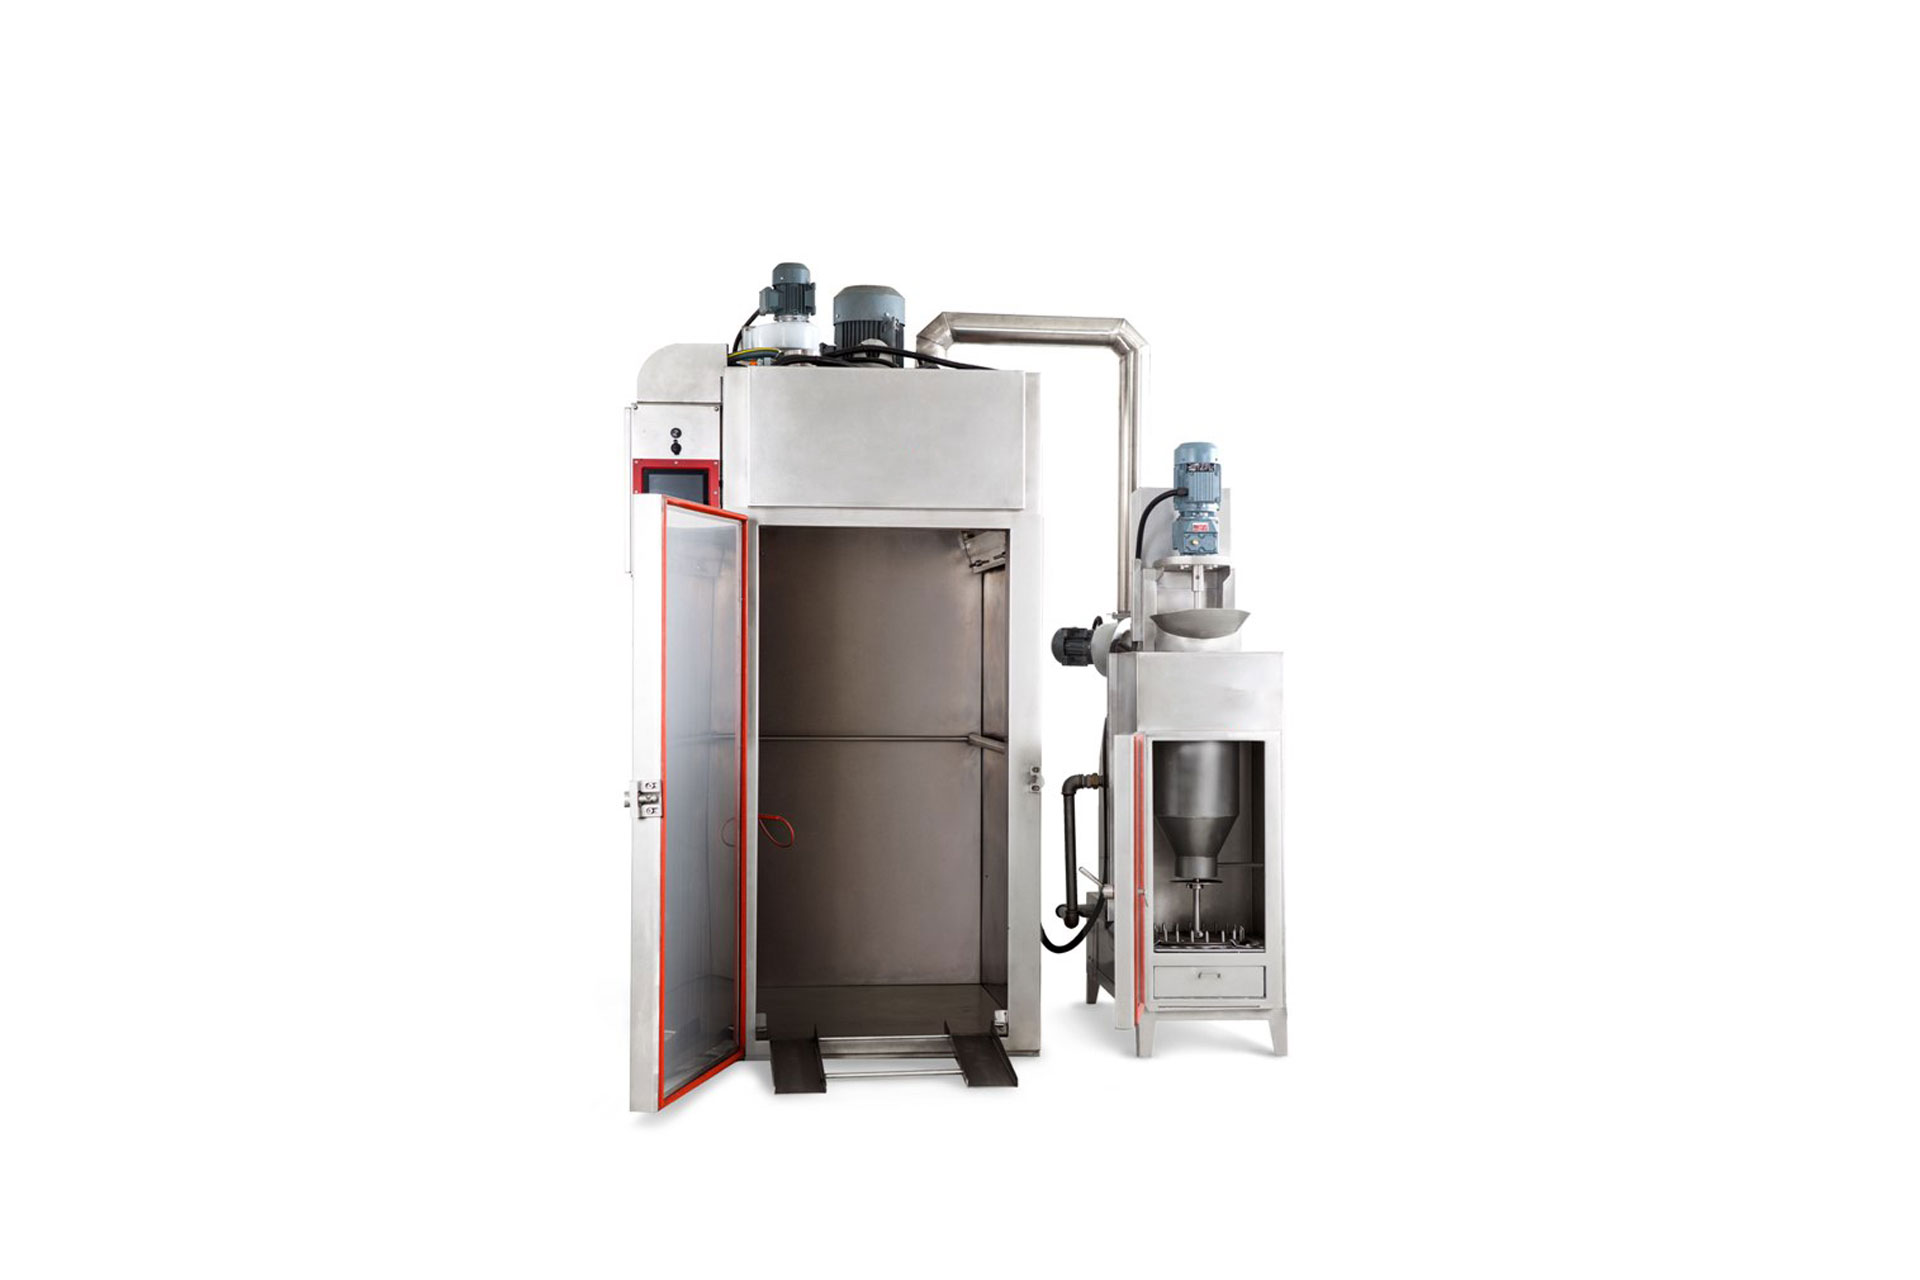 AO-Series Automatic Ovens